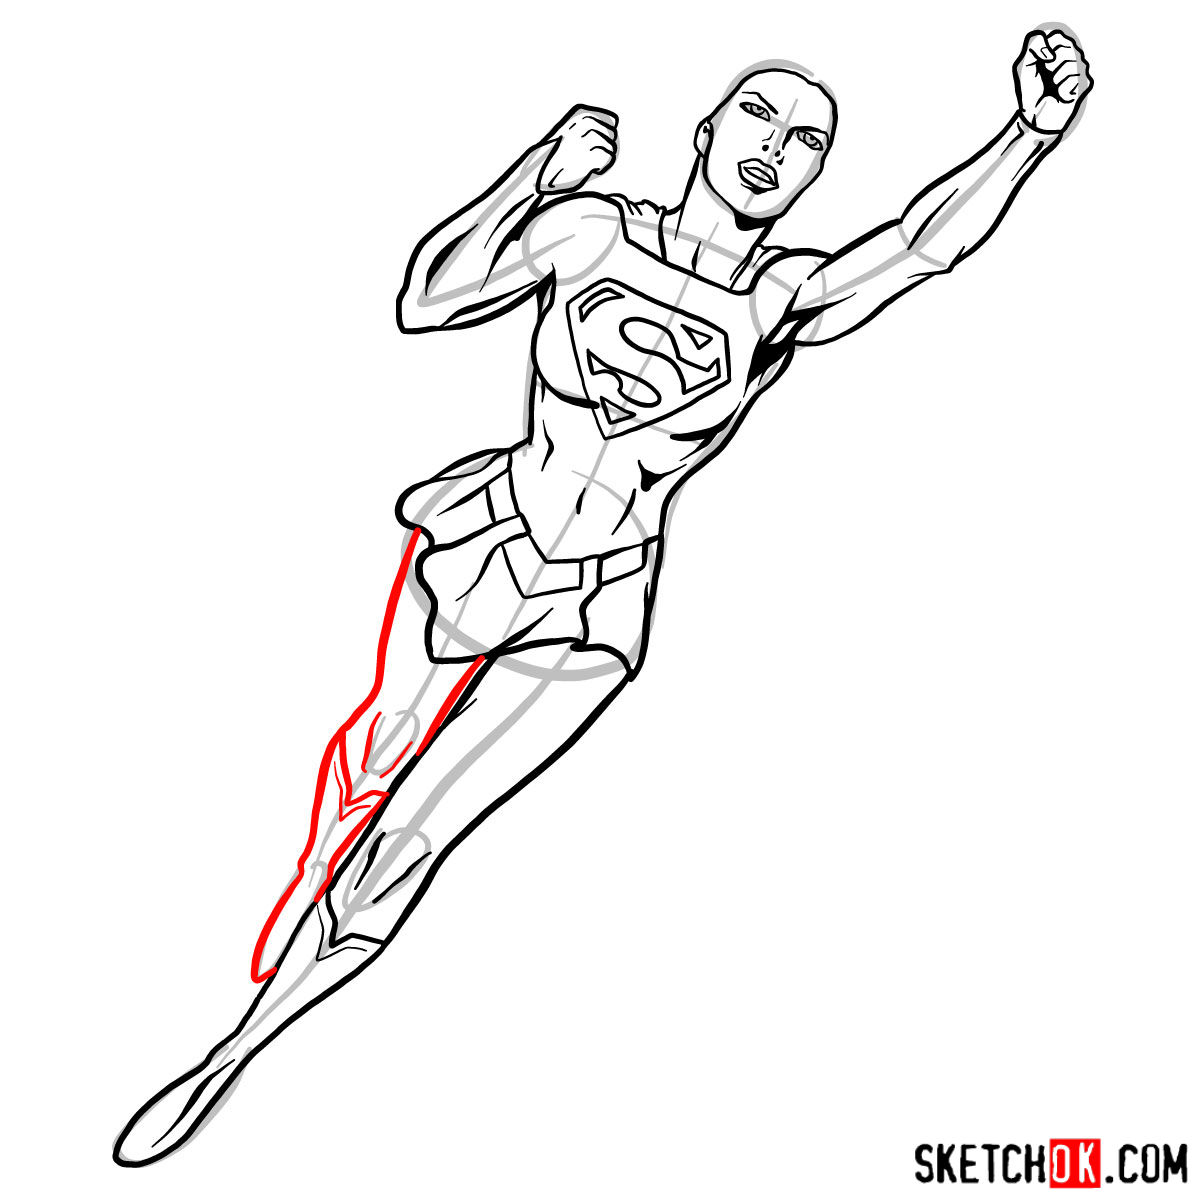 How To Draw Supergirl In Flight Sketchok Step By Step Drawing Tutorials